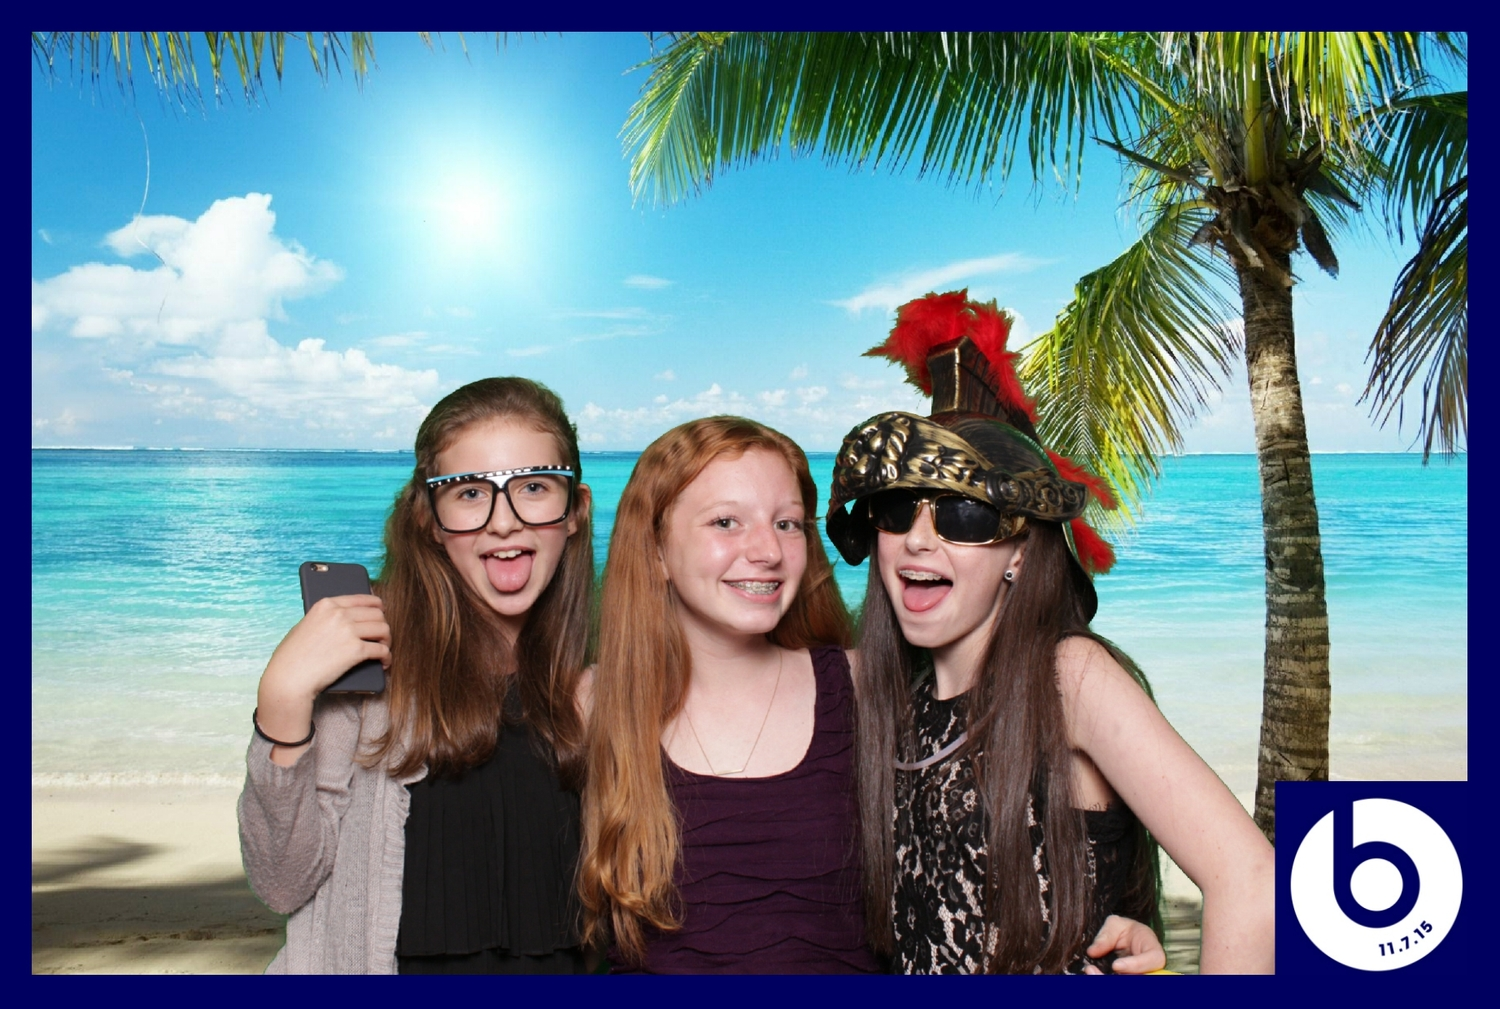 Boothie+BarMitzvah+Photo+Booth+-+Blake's+Bar+Mitzvah+(44).jpg